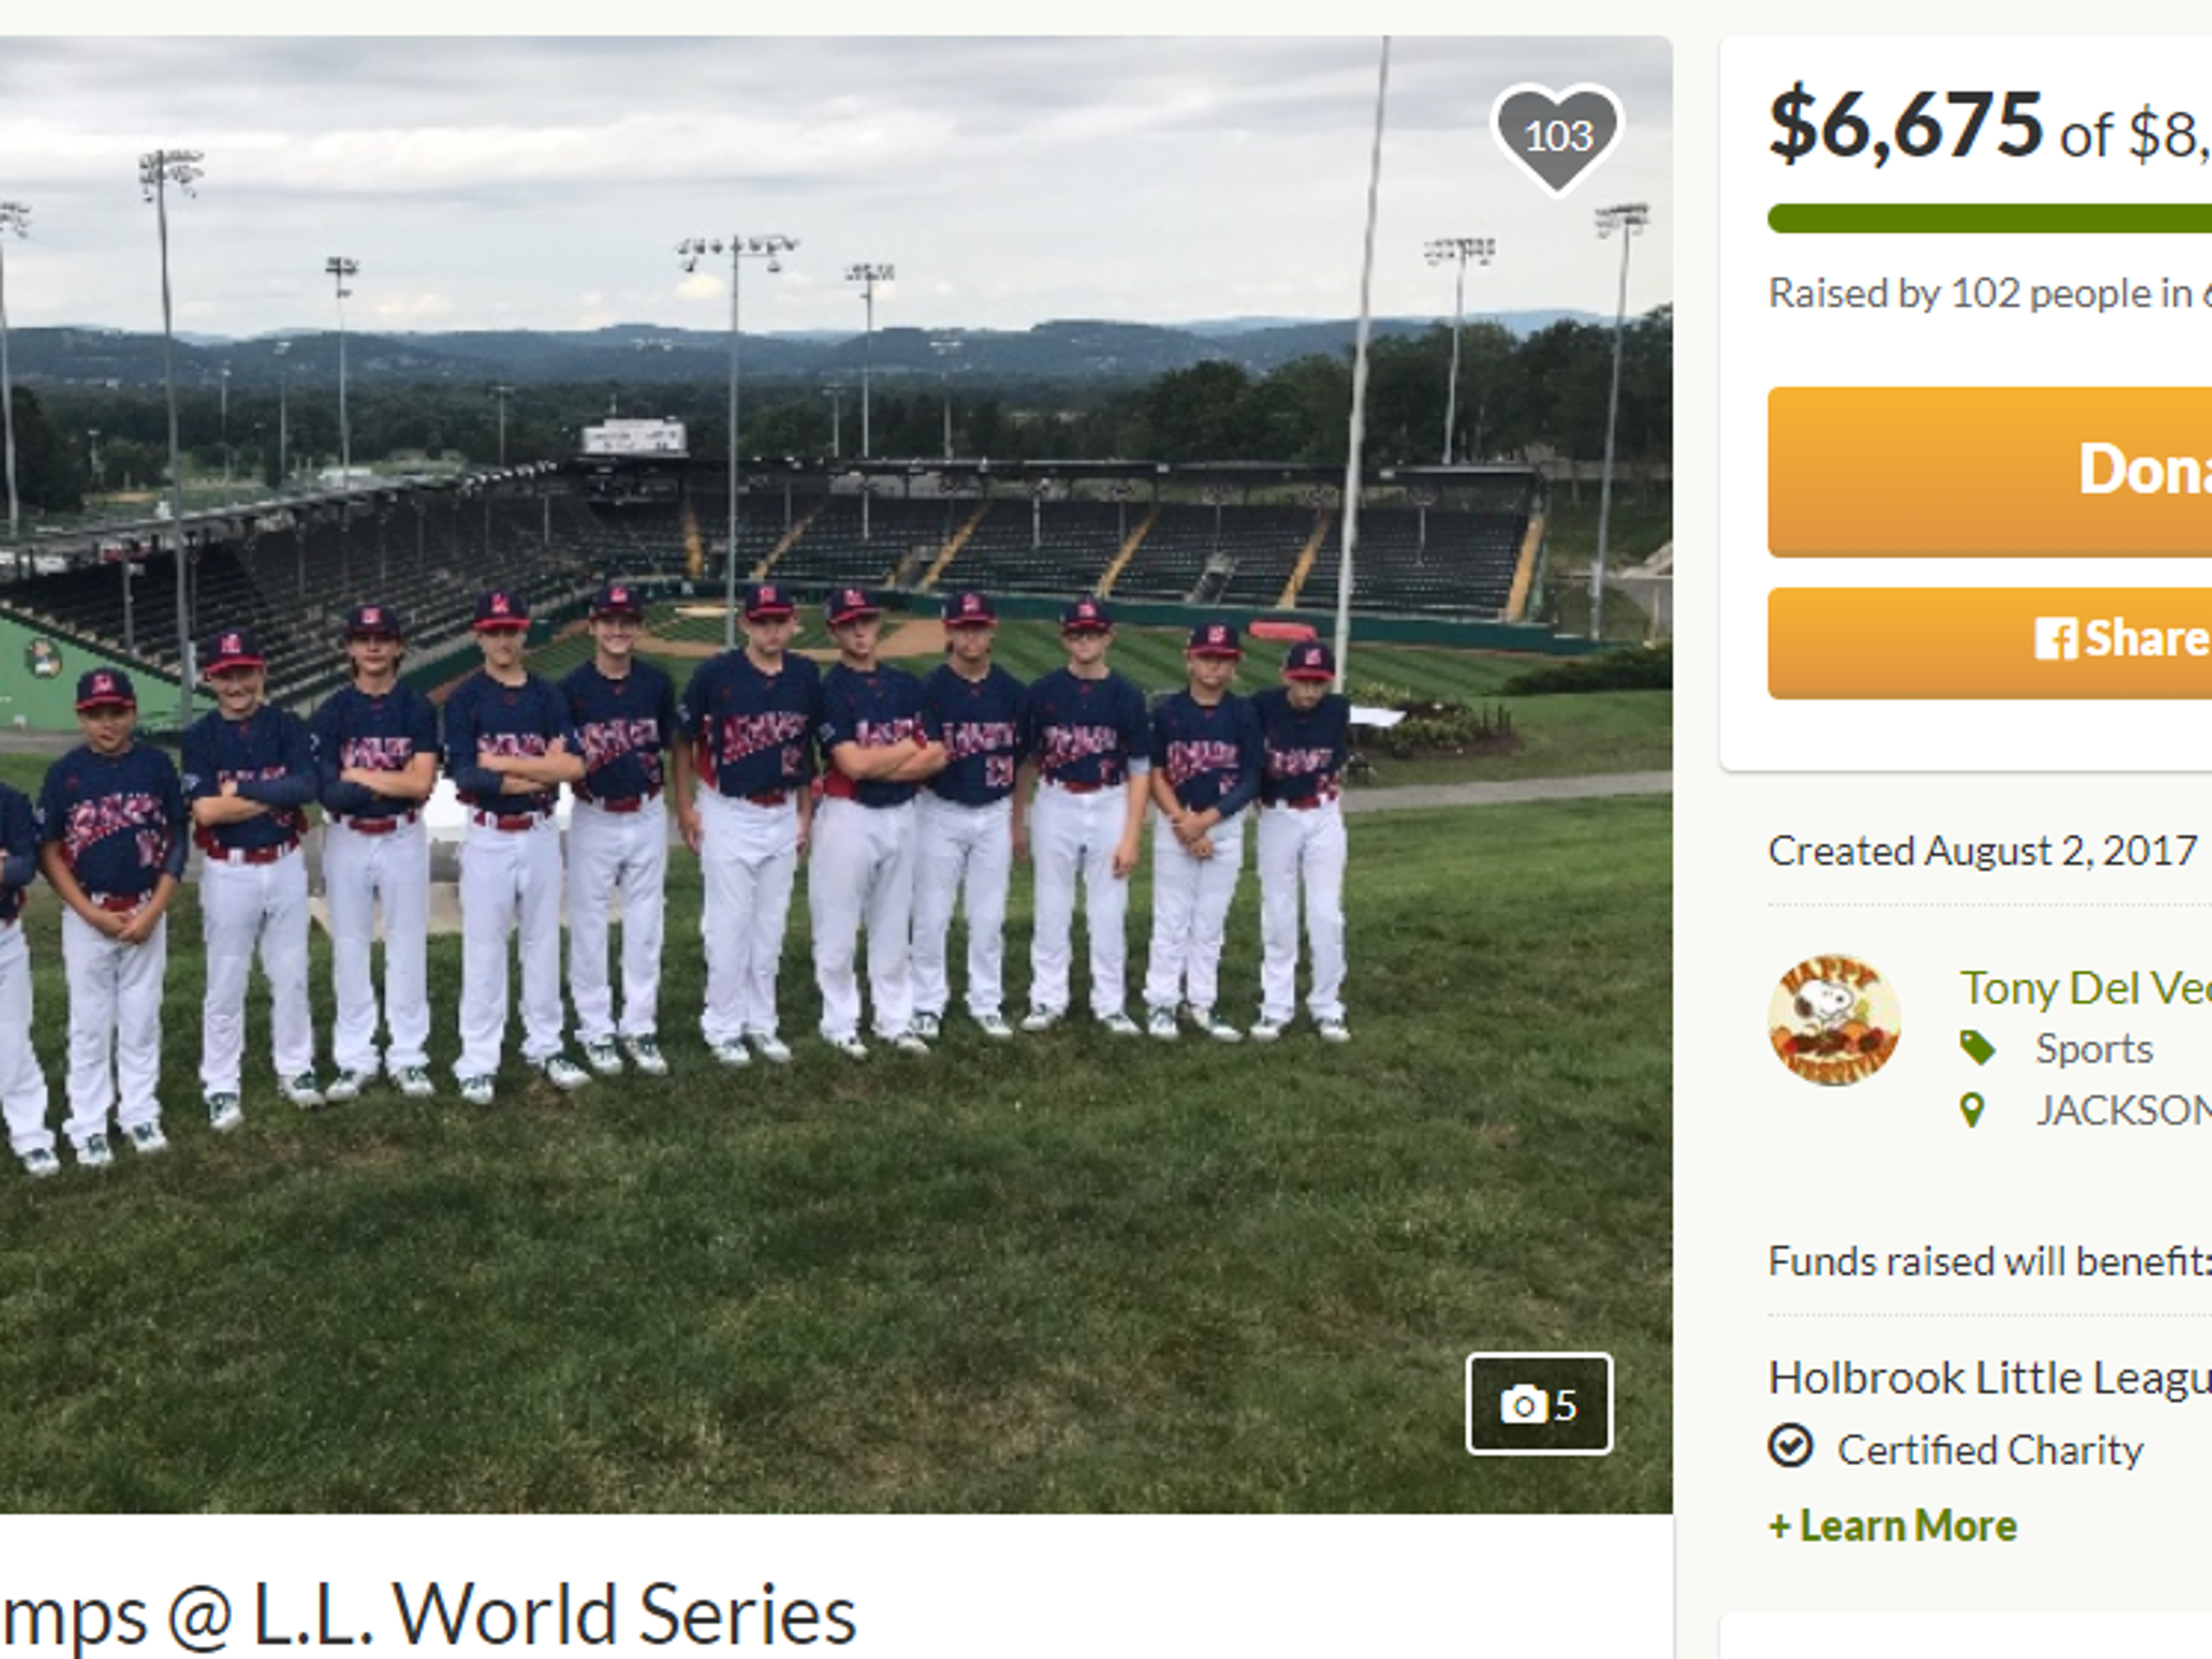 Screenshot of the GoFundMe campaign to reimburse parents of Holbrook Little League players on the run to the Little League World Series